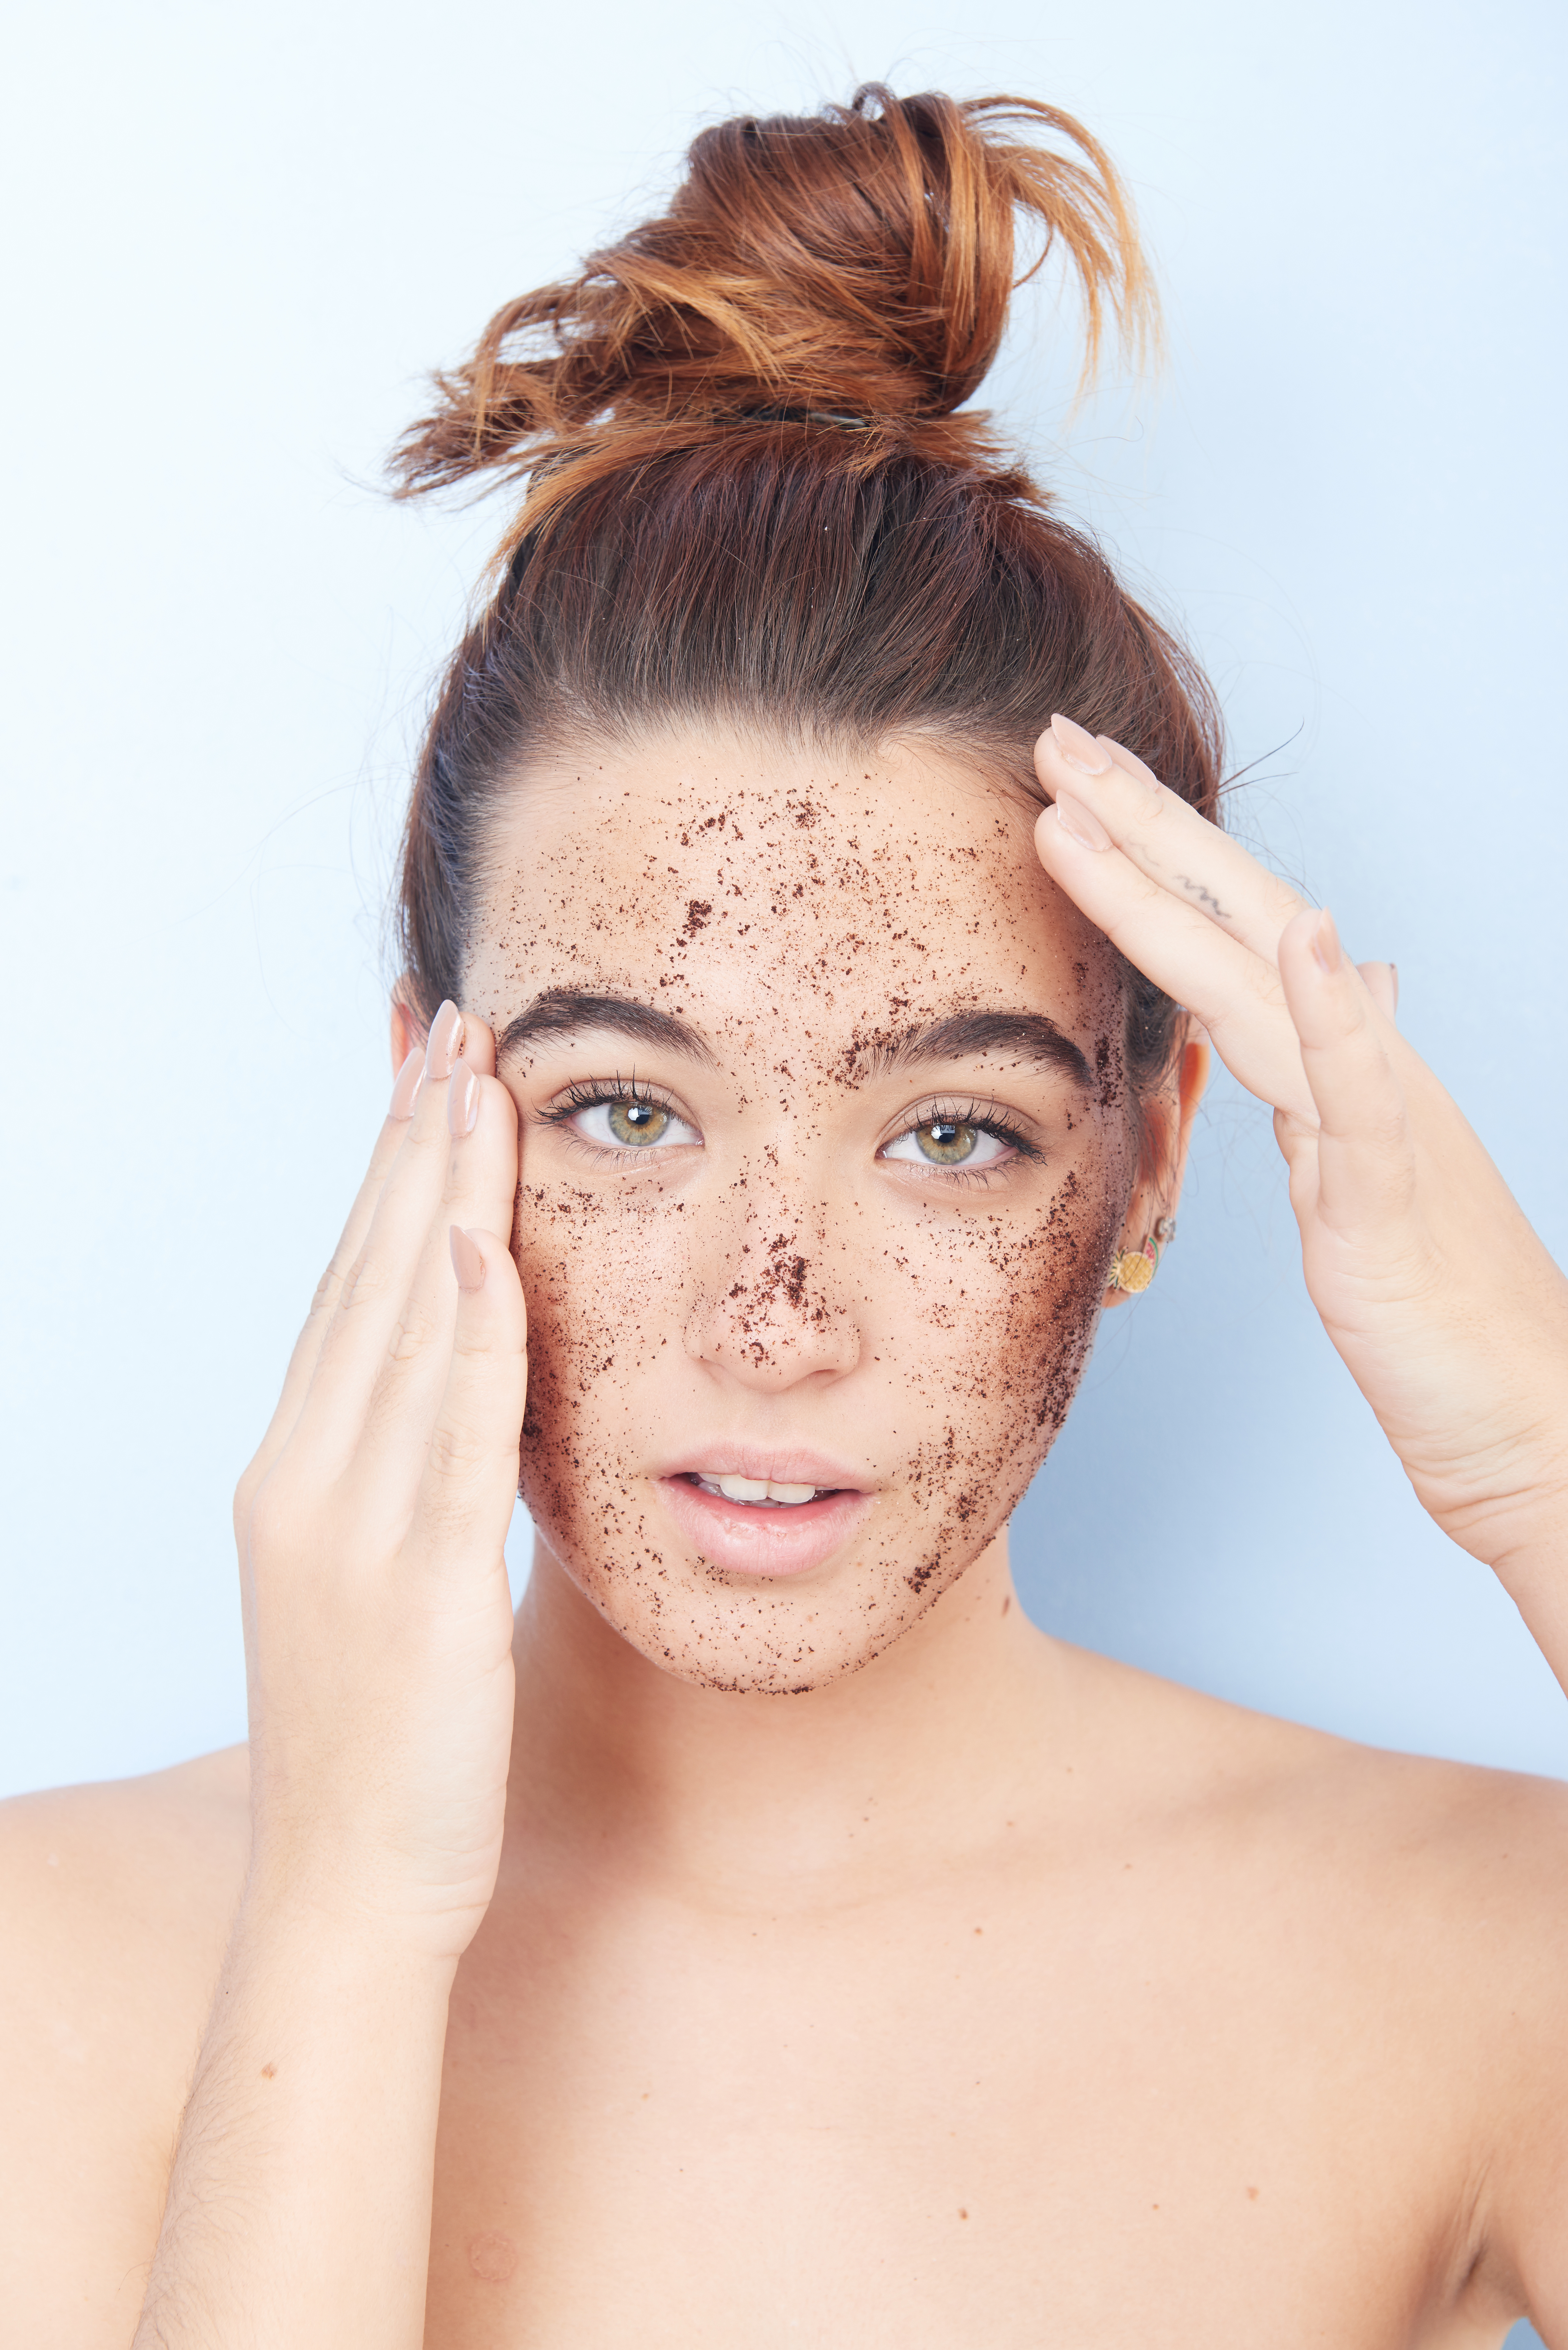 How Not to Exfoliate